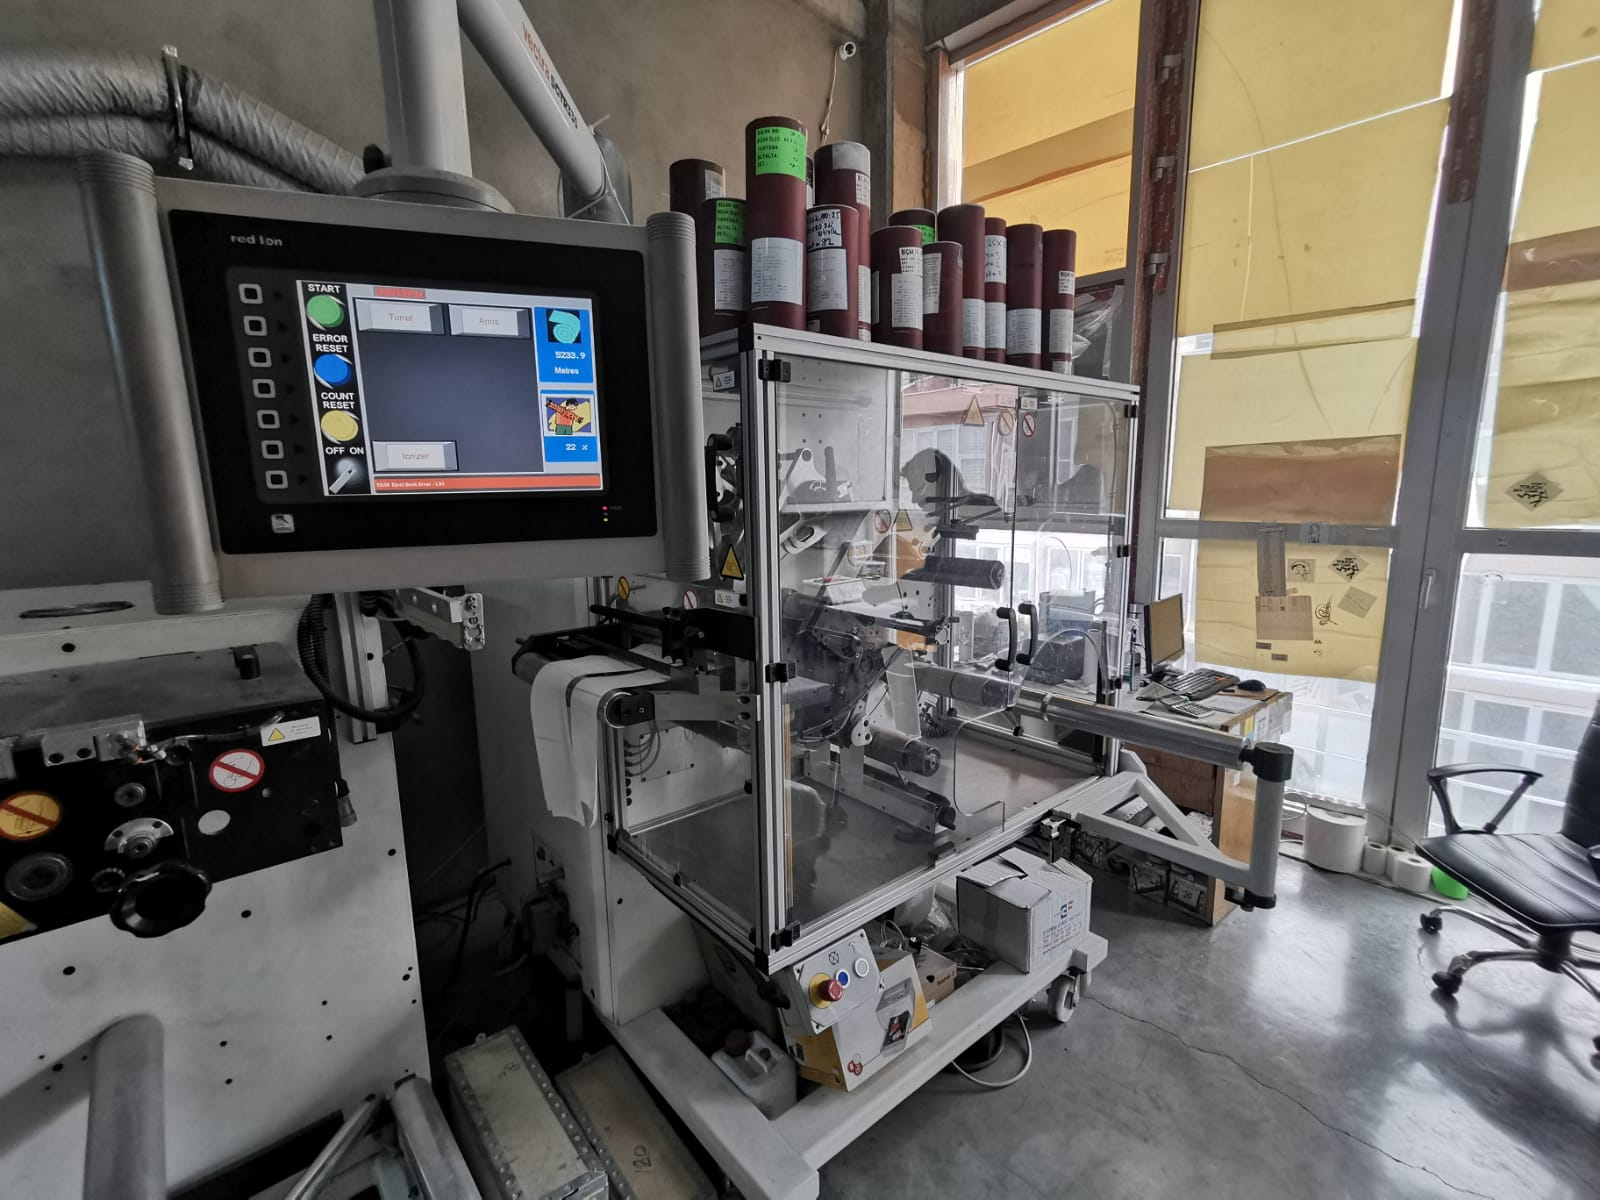 ABG Vectra SGTR 330-4 - Used Flexo Printing Presses and Used Flexographic Equipment-11